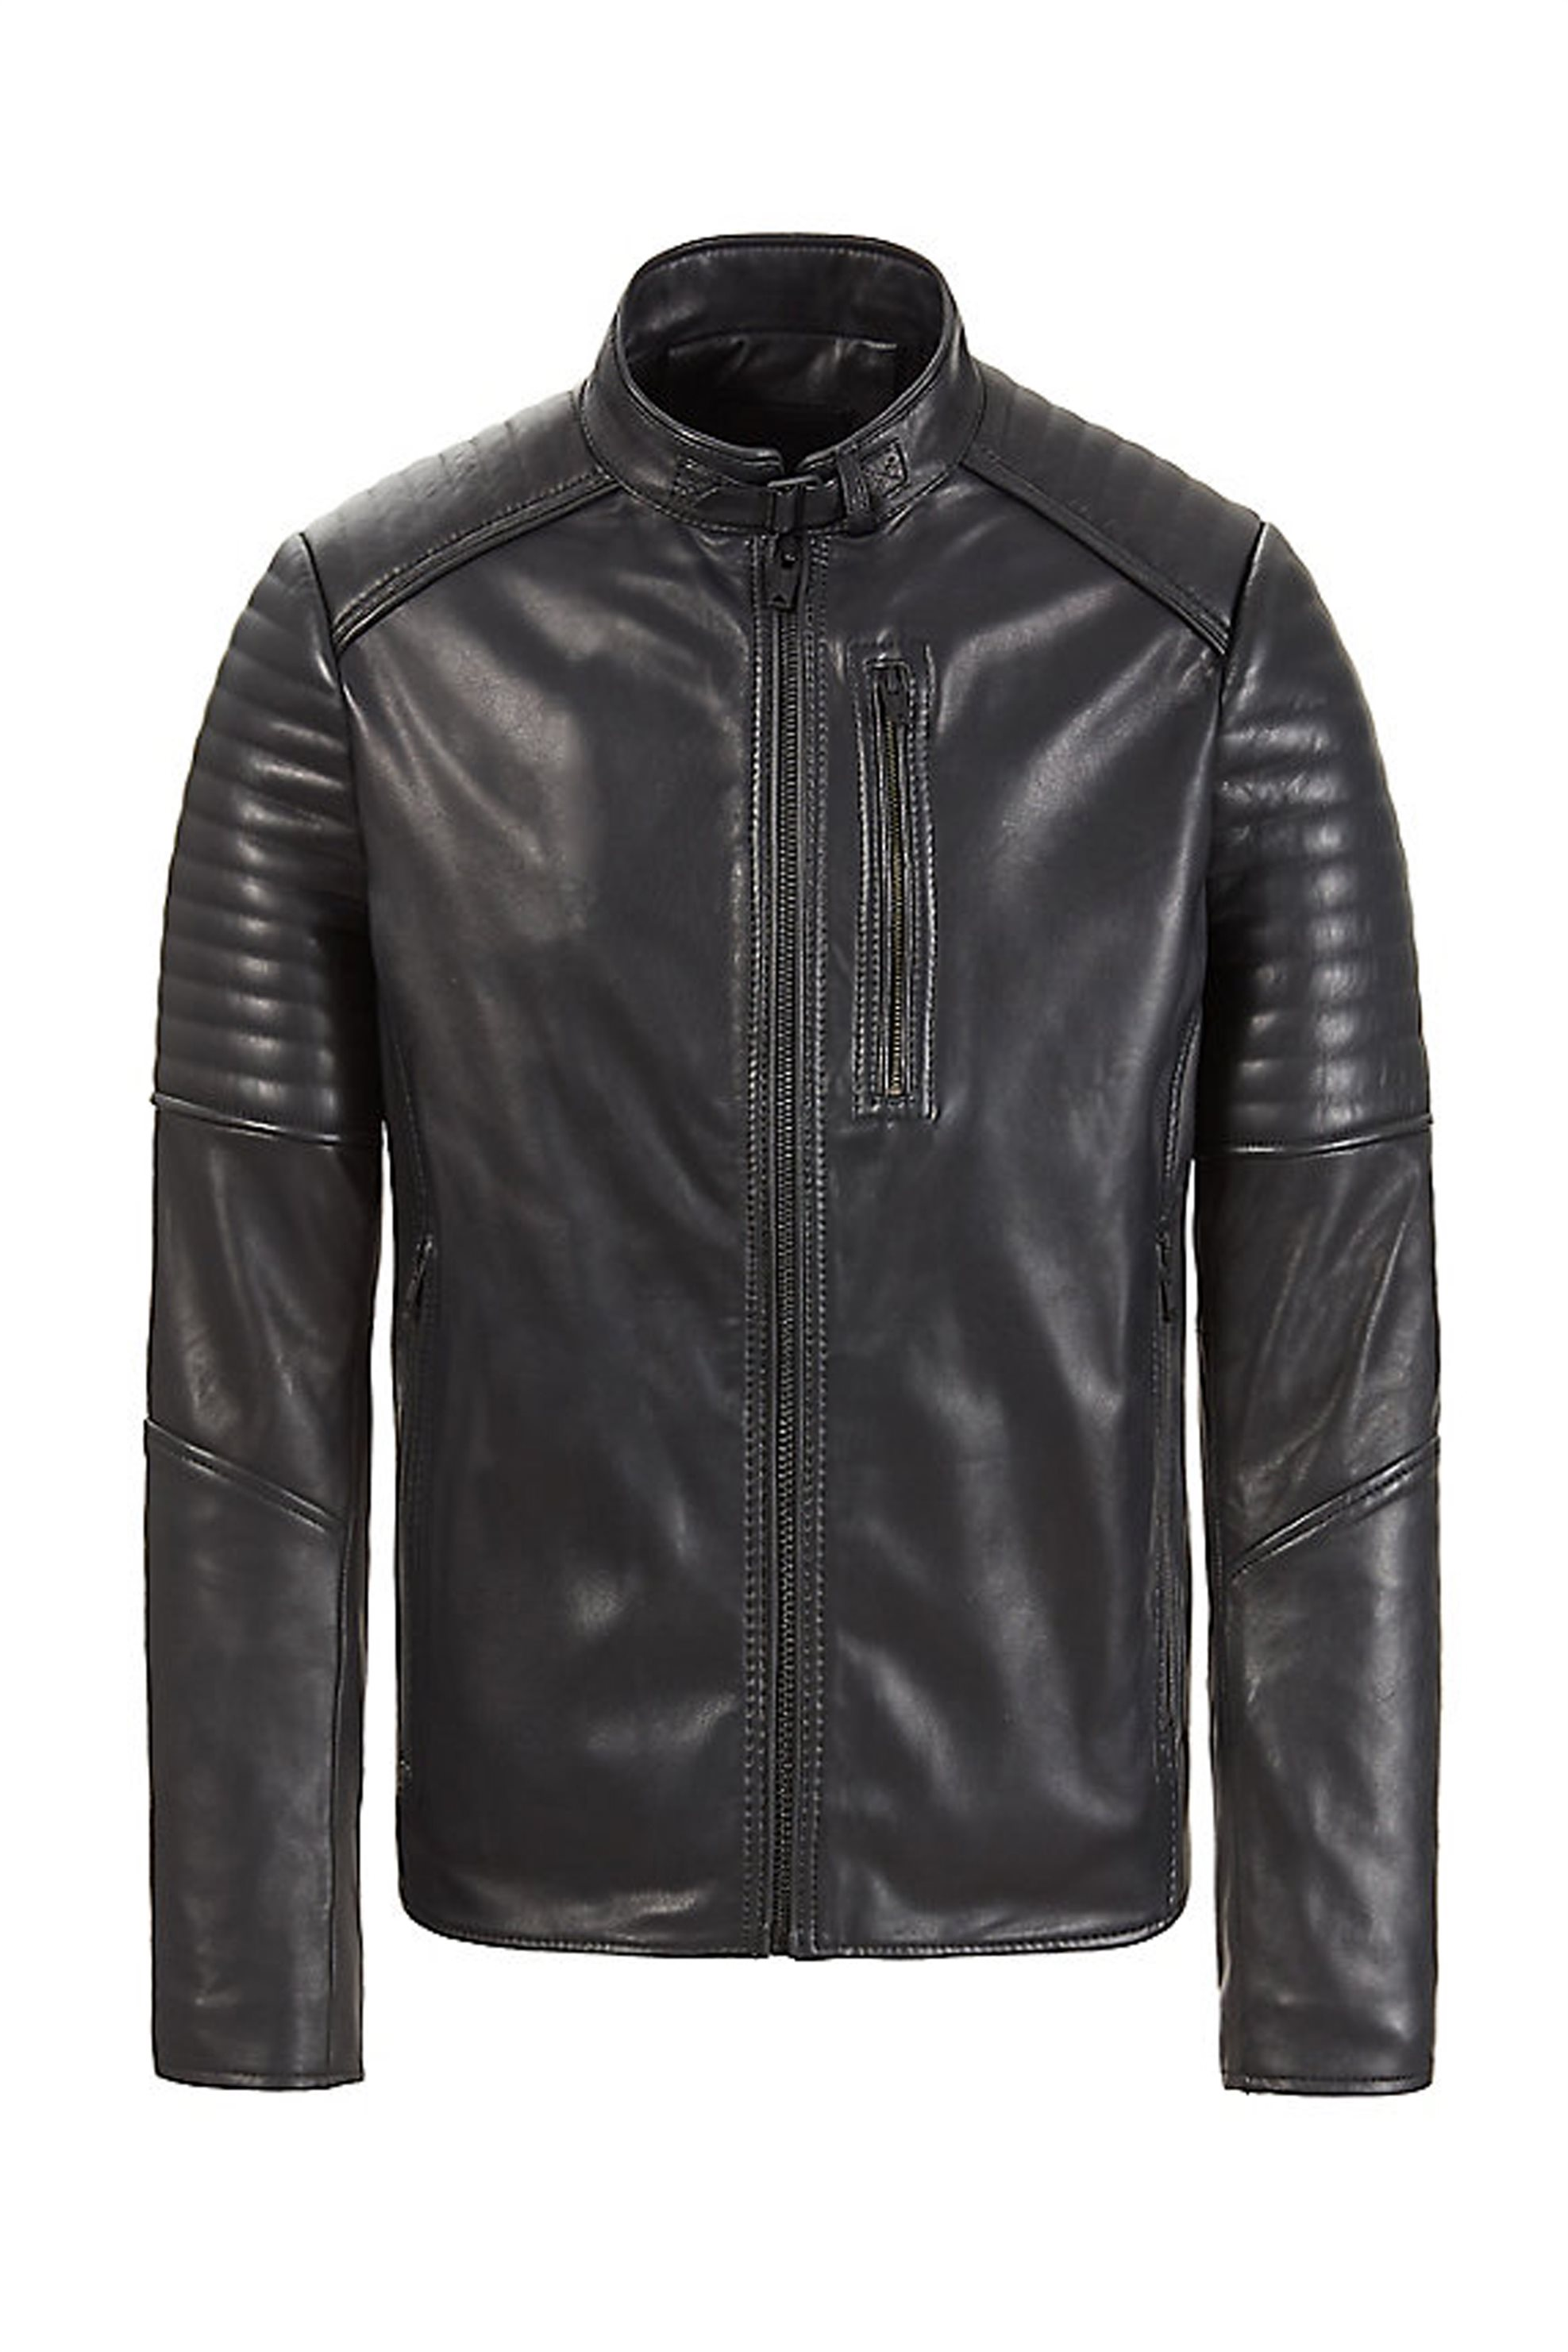 Timberland ανδρικό τζάκετ Leather Cafe Racer - TB0A1MYT0011 - Μαύρο ανδρασ   ρουχα   παλτό   μπουφάν   δερμάτινα